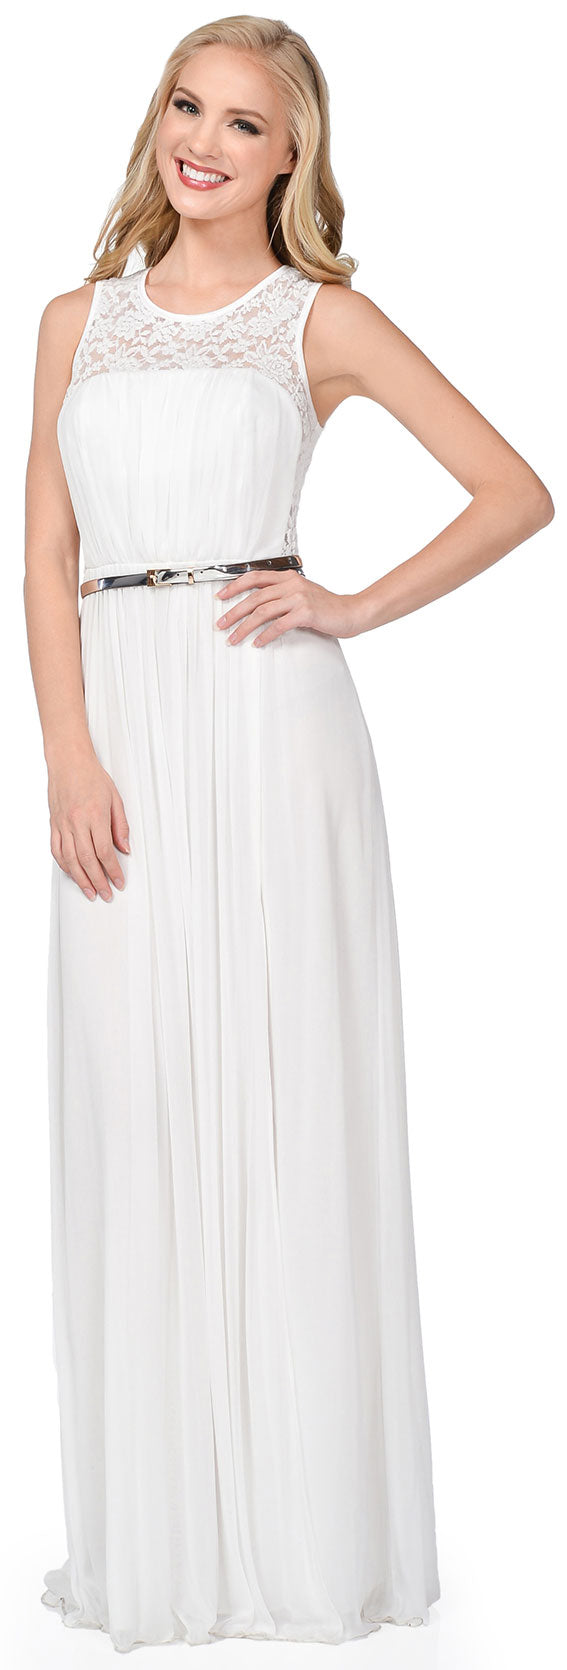 Main image of Sheer Lace Top Waist Belt Long Bridesmaid Dress